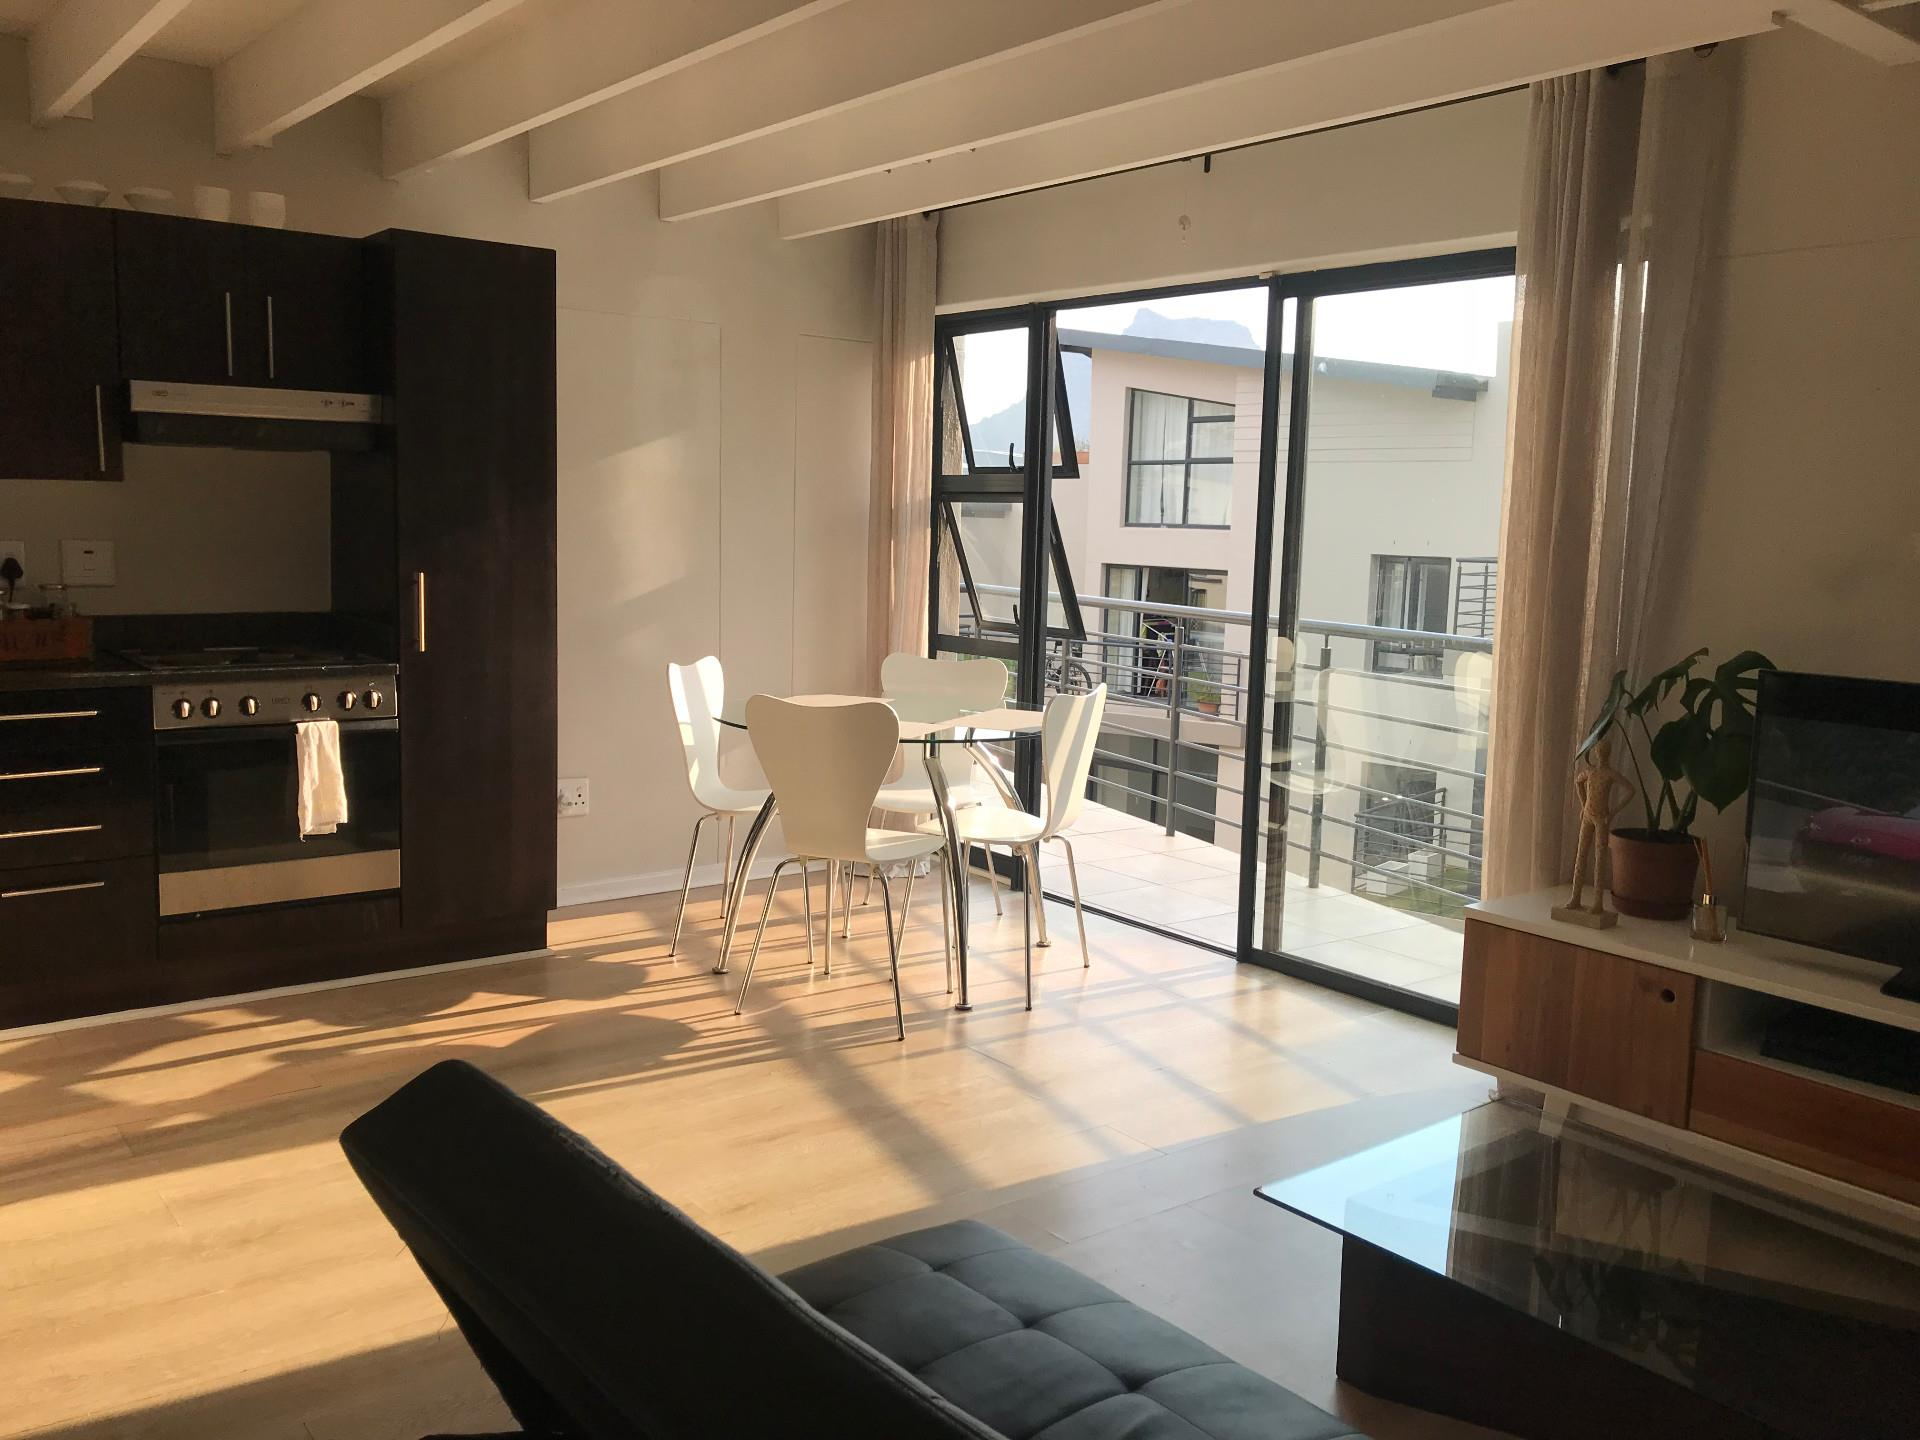 2 Bedroom Apartment For Sale in Beach Estate